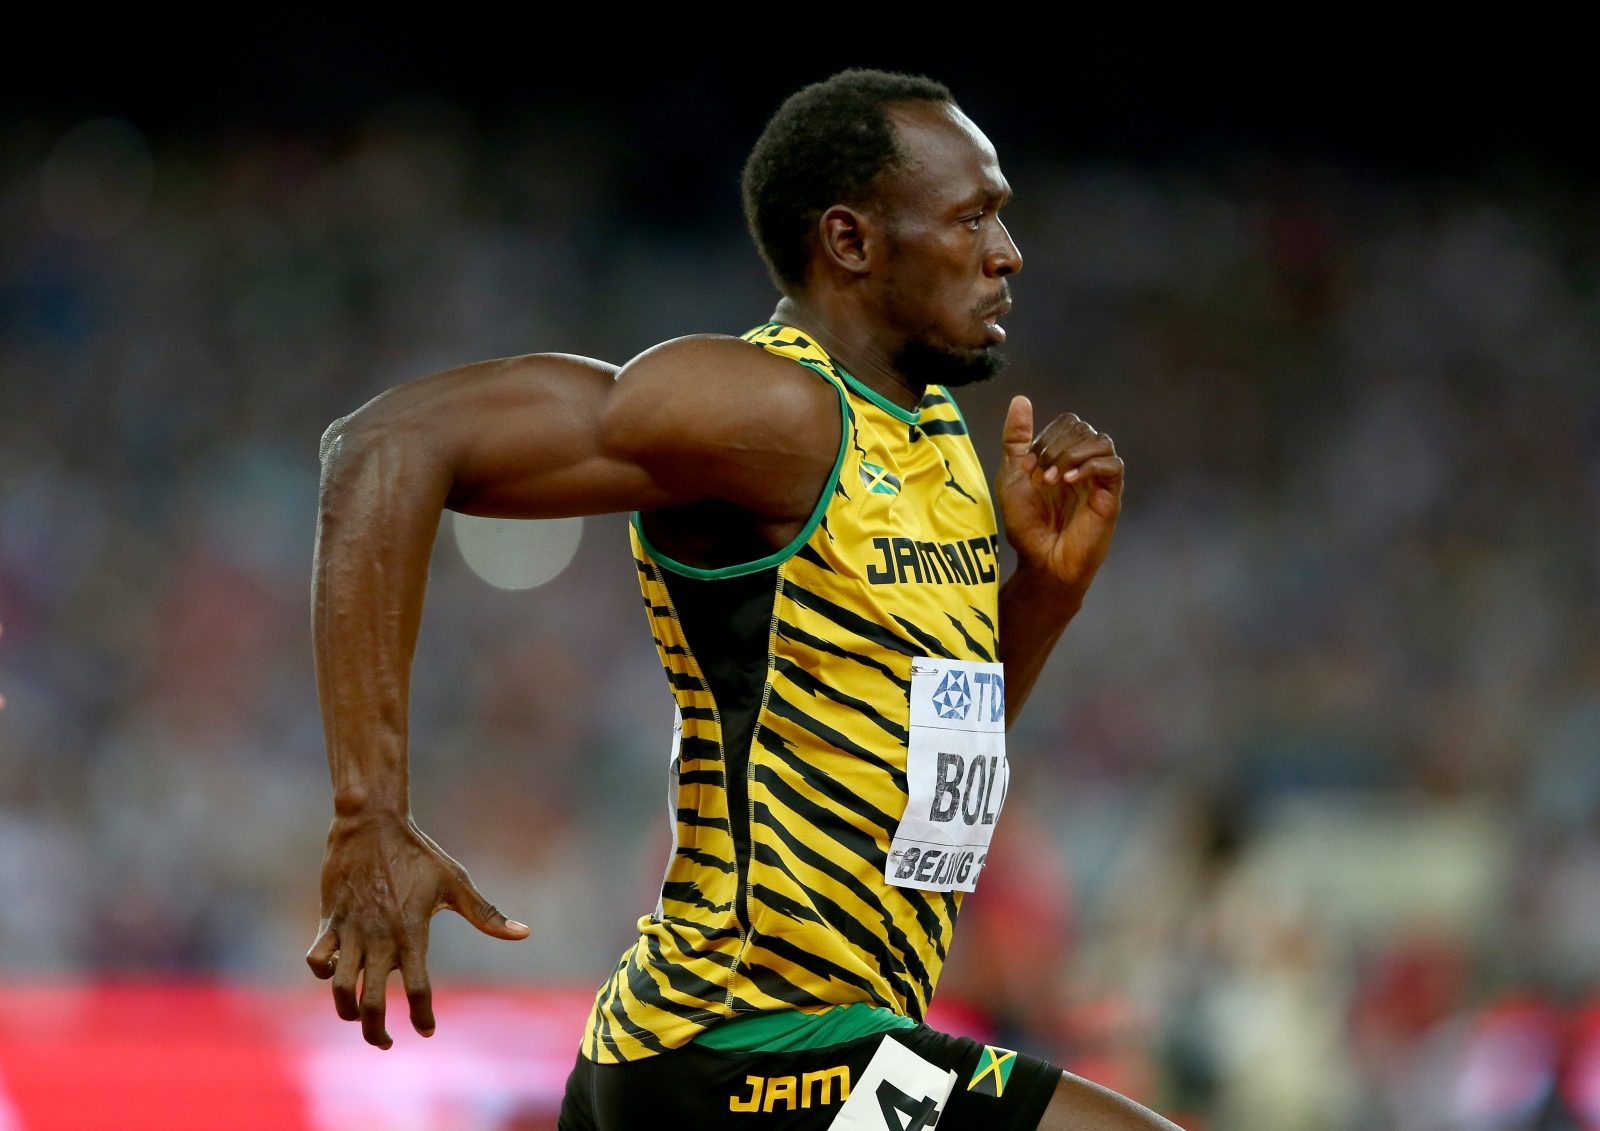 Usain Bolt cannot be sole saviour of Athletics